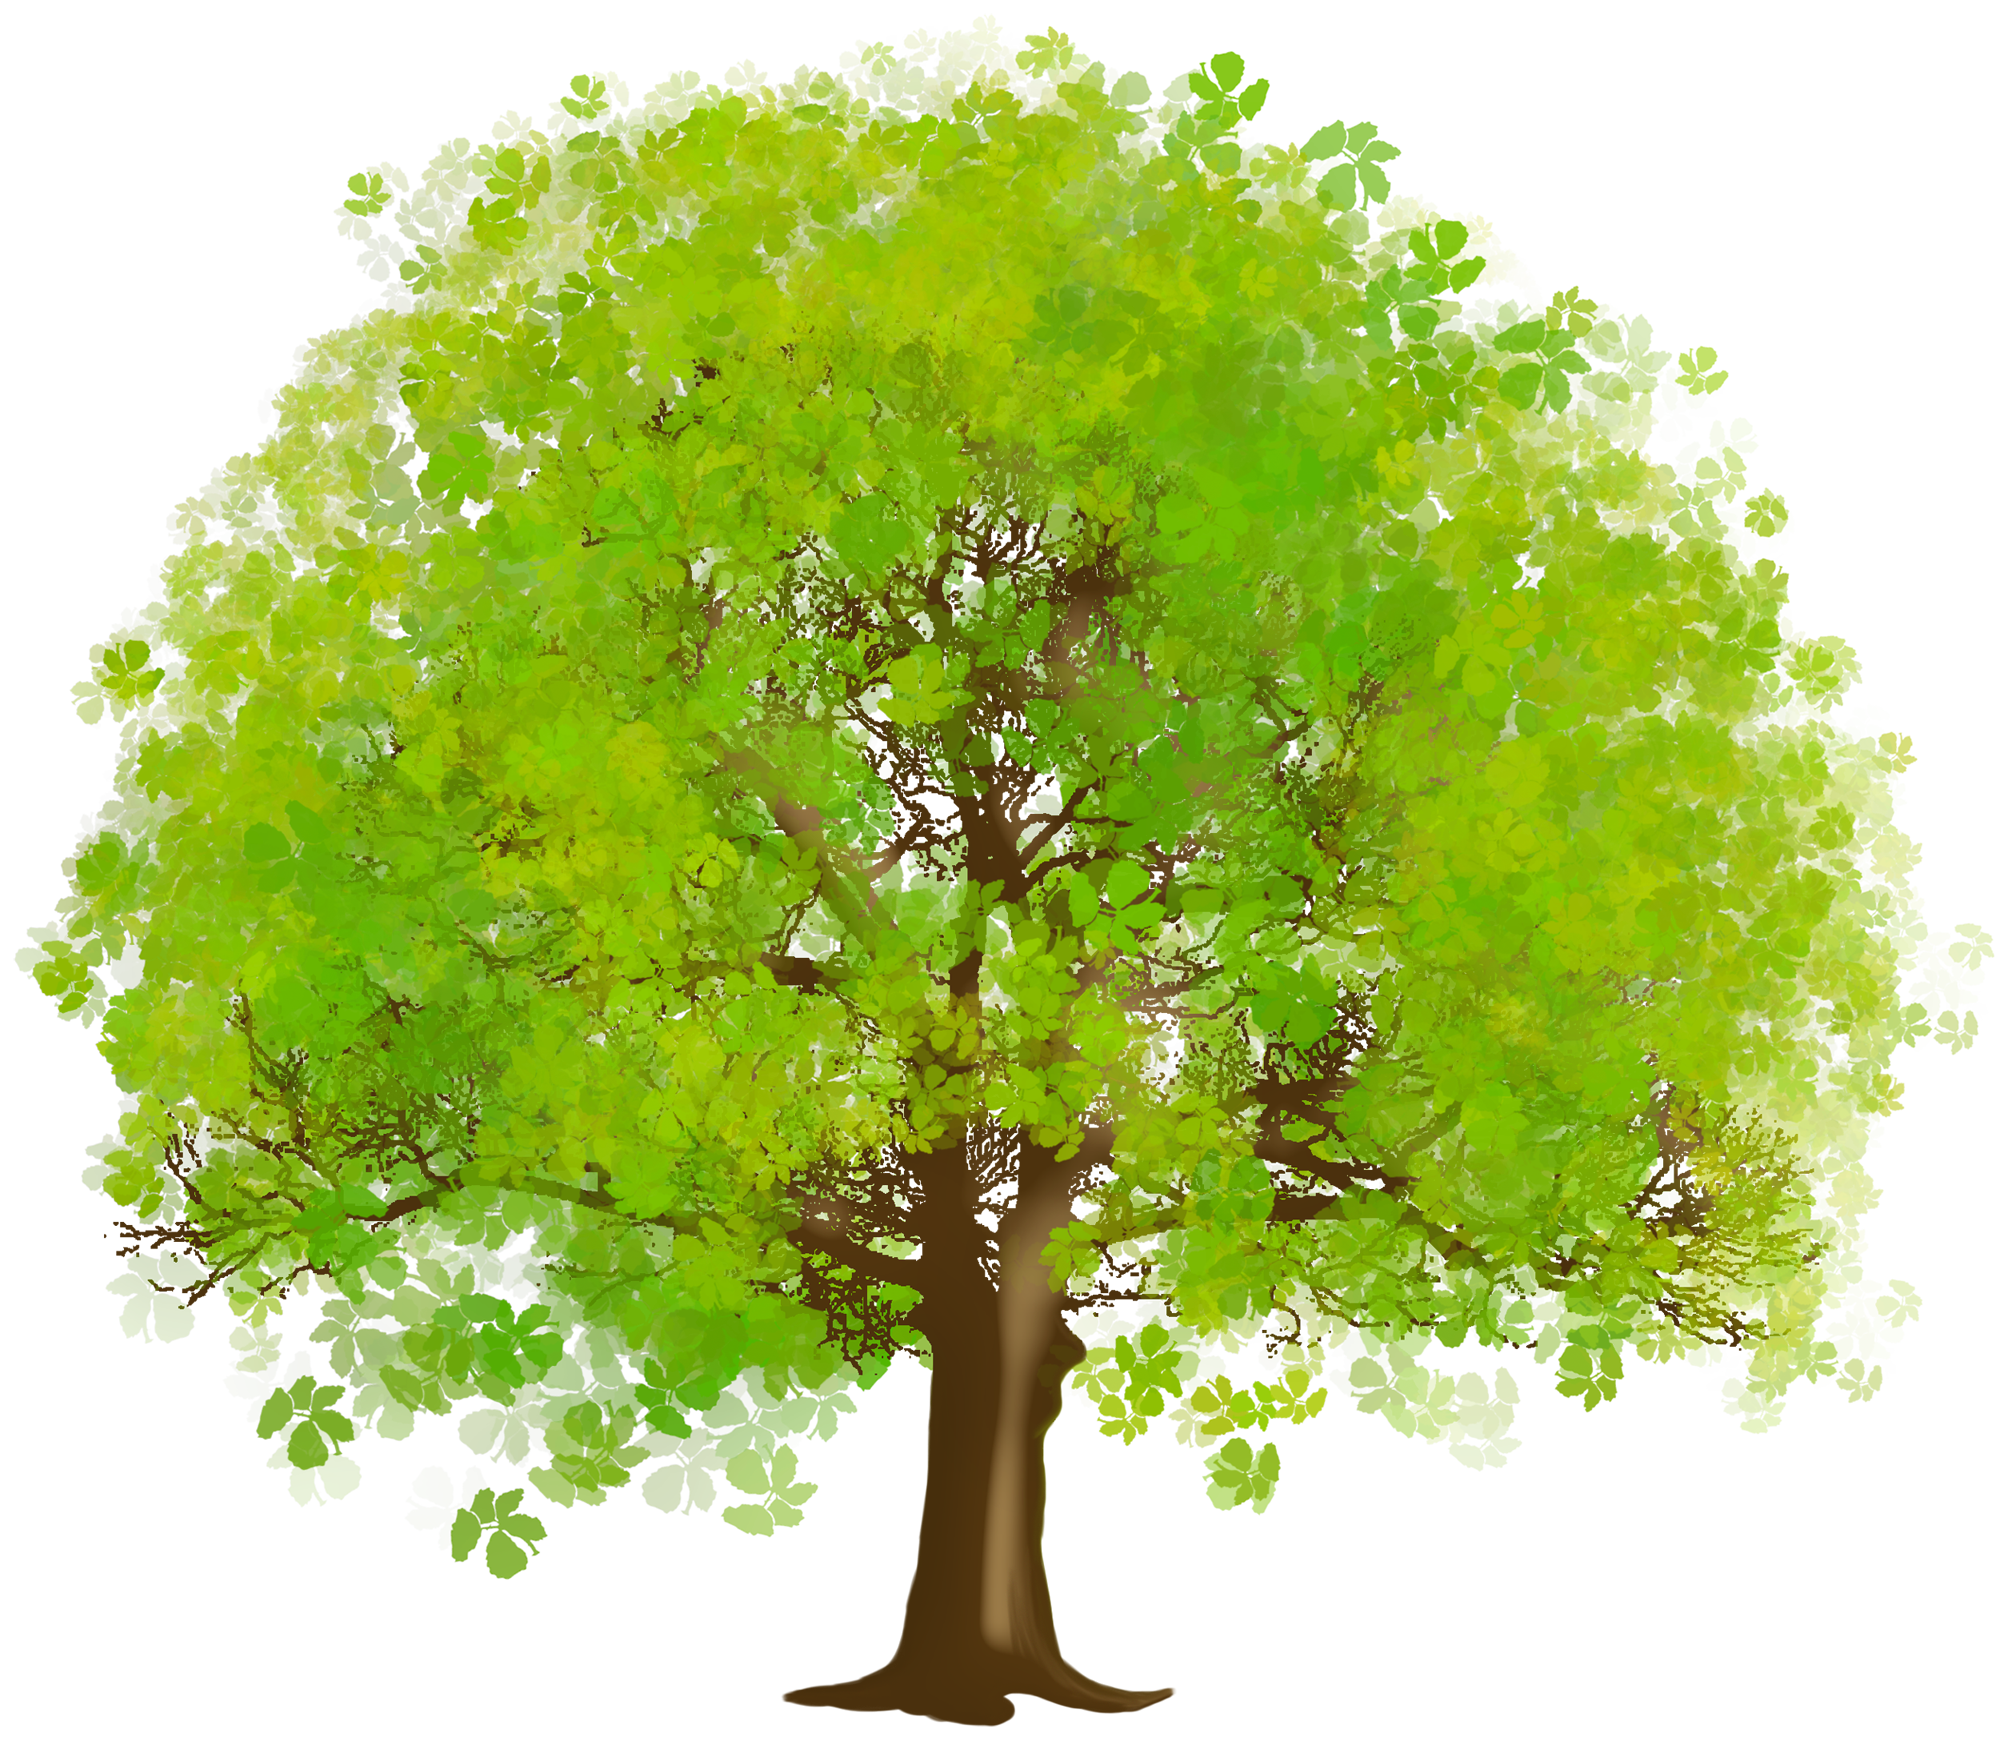 Tree clipart free download banner library stock Free Tree Cliparts, Download Free Clip Art, Free Clip Art on ... banner library stock